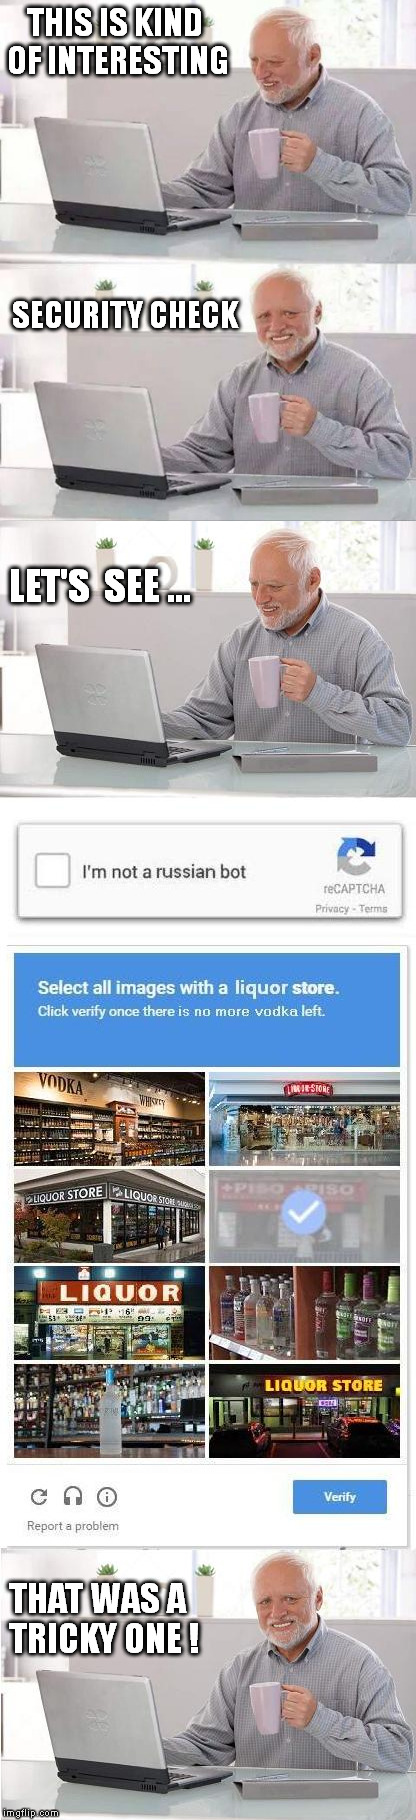 Harold does the bot check | THIS IS KIND OF INTERESTING THAT WAS A  TRICKY ONE ! SECURITY CHECK LET'S  SEE ... | image tagged in hide the pain harold,russian bot,russian bots,russianbot,russianbots,memes | made w/ Imgflip meme maker